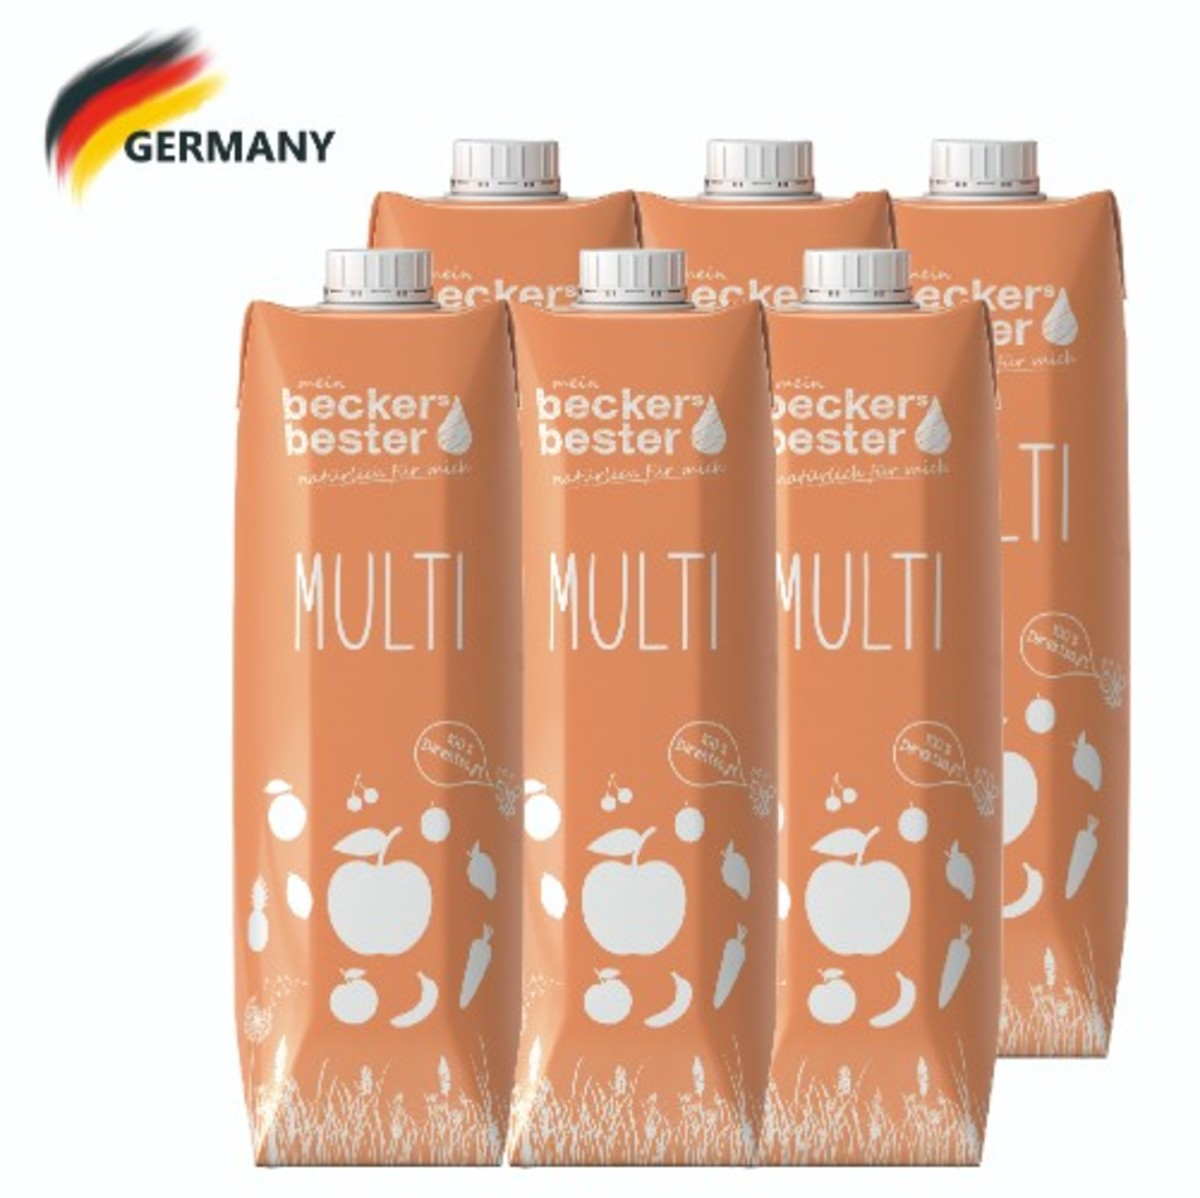 100% Direct Pressed Multi Juice (Not-From-Concentrate) 1L x6